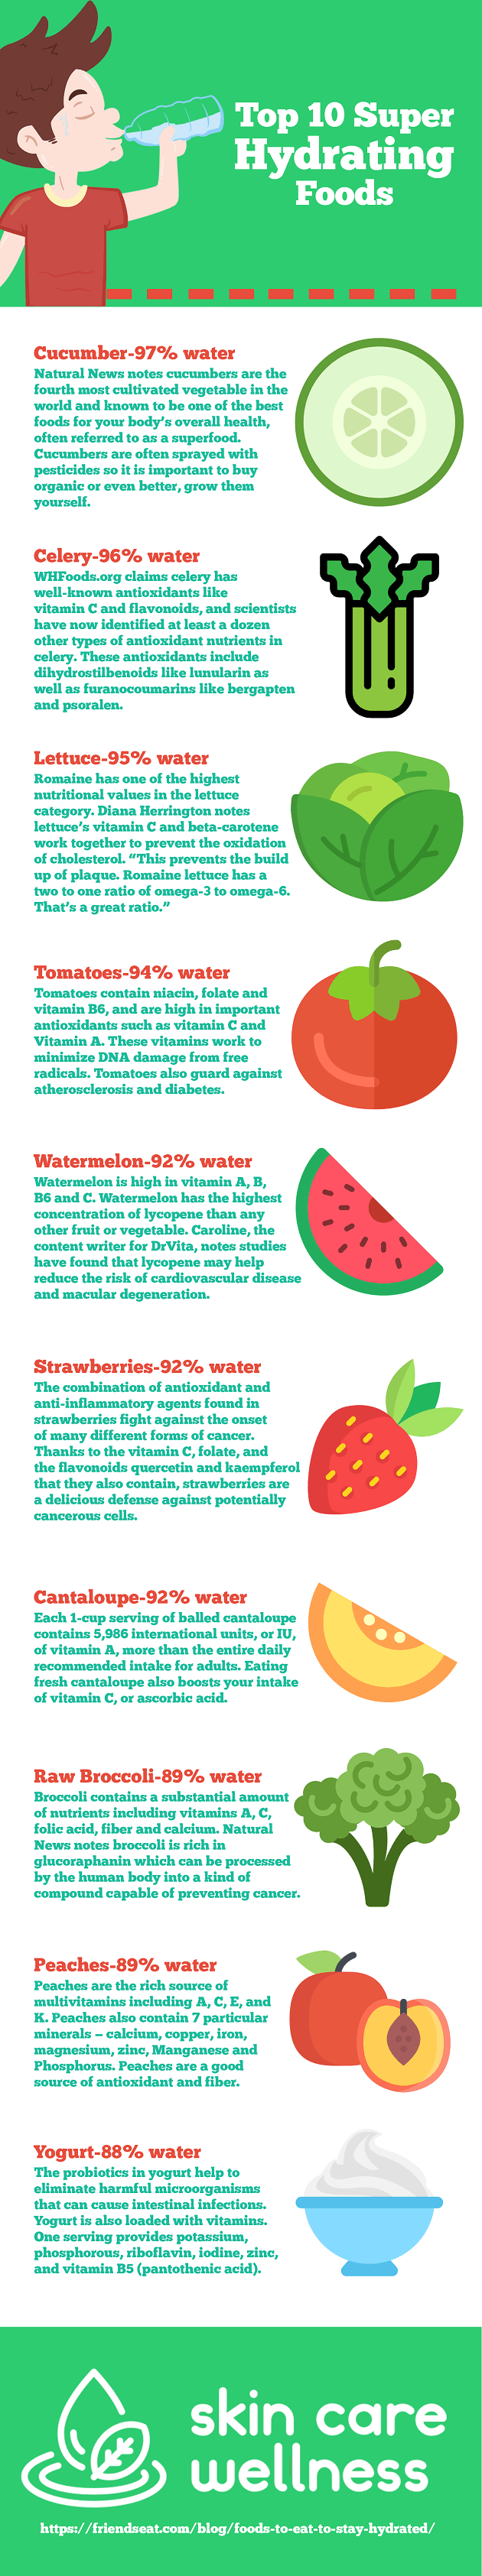 Top 10 Super Hydrating Foods